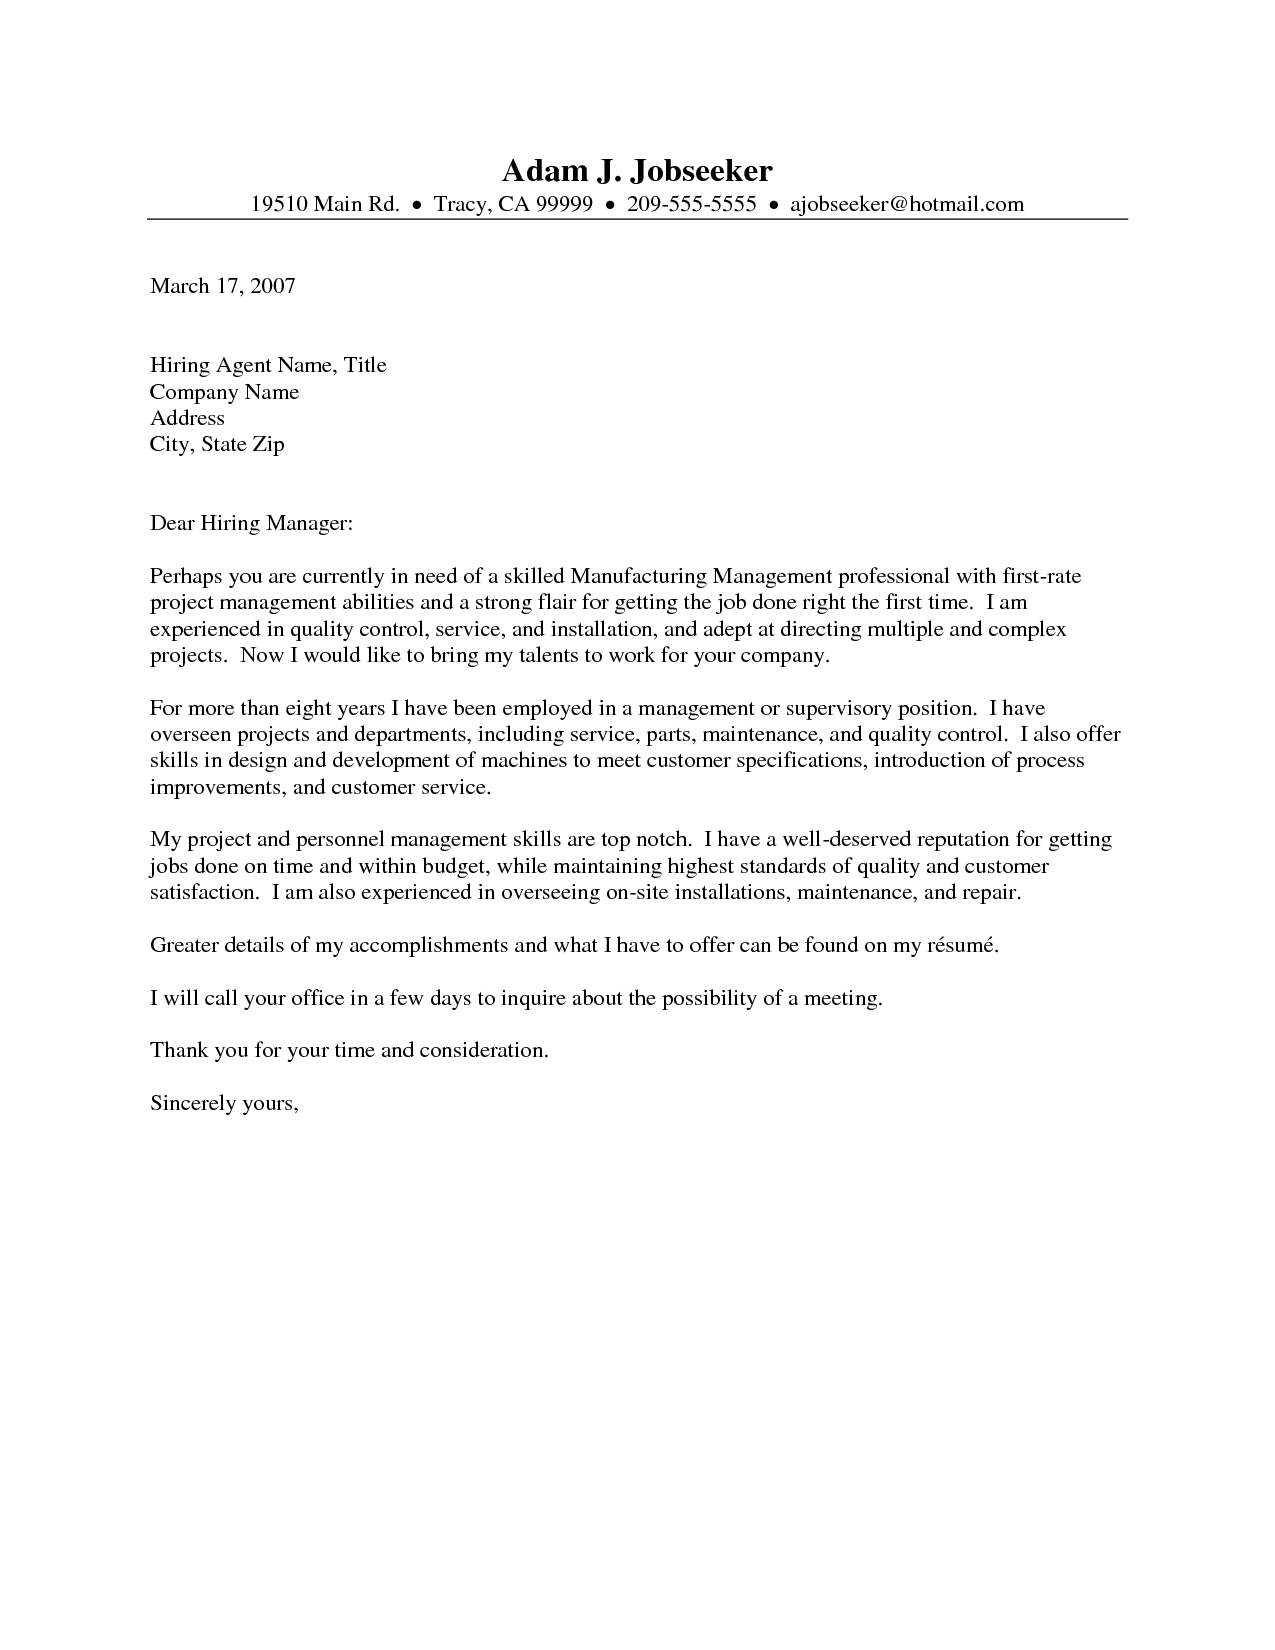 Medical assistant Cover Letter Template - Free Cover Letter Examples for Resume Cover Letter for Resume